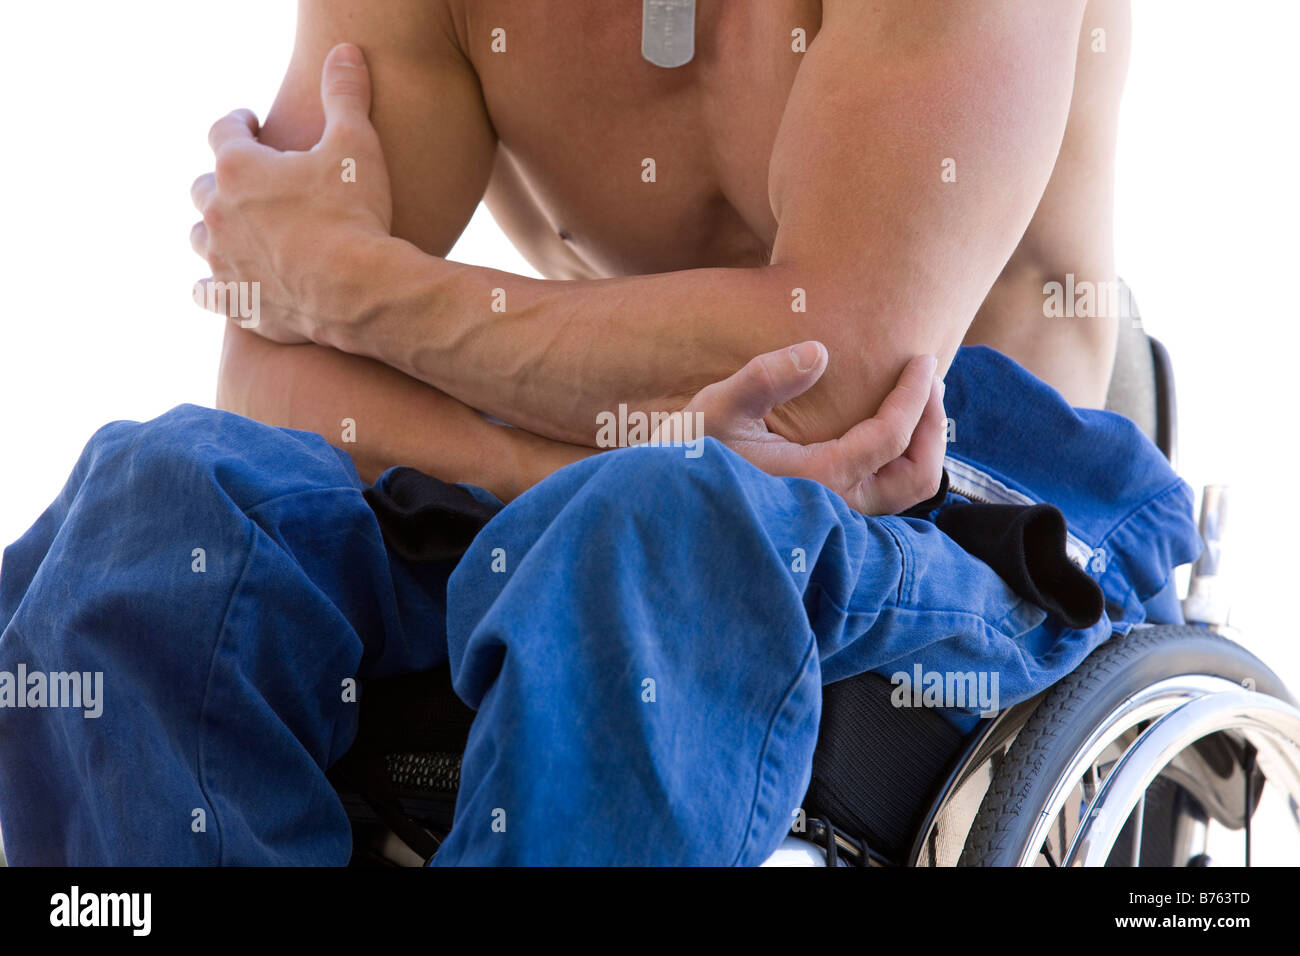 Shirtless man on wheelchairs, mid section - Stock Image